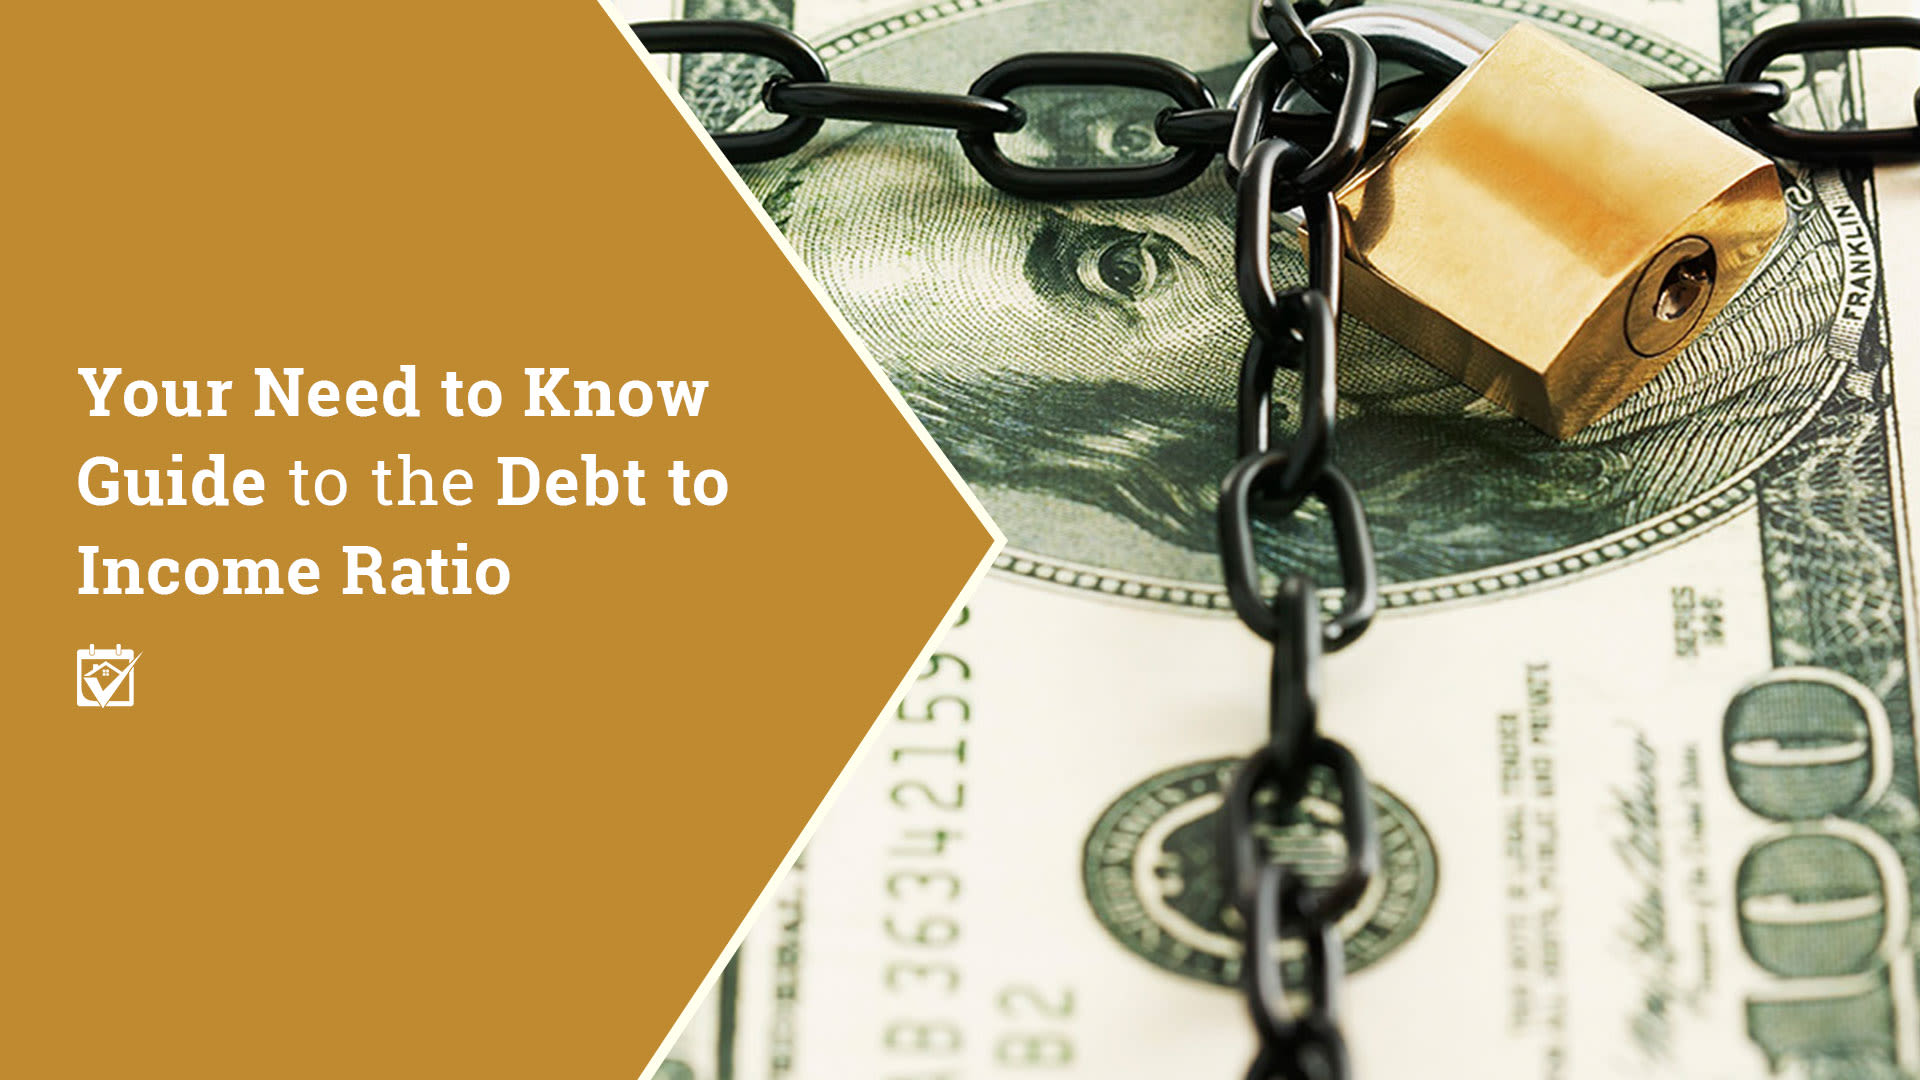 Your Need to Know Guide to the Debt to Income Ratio